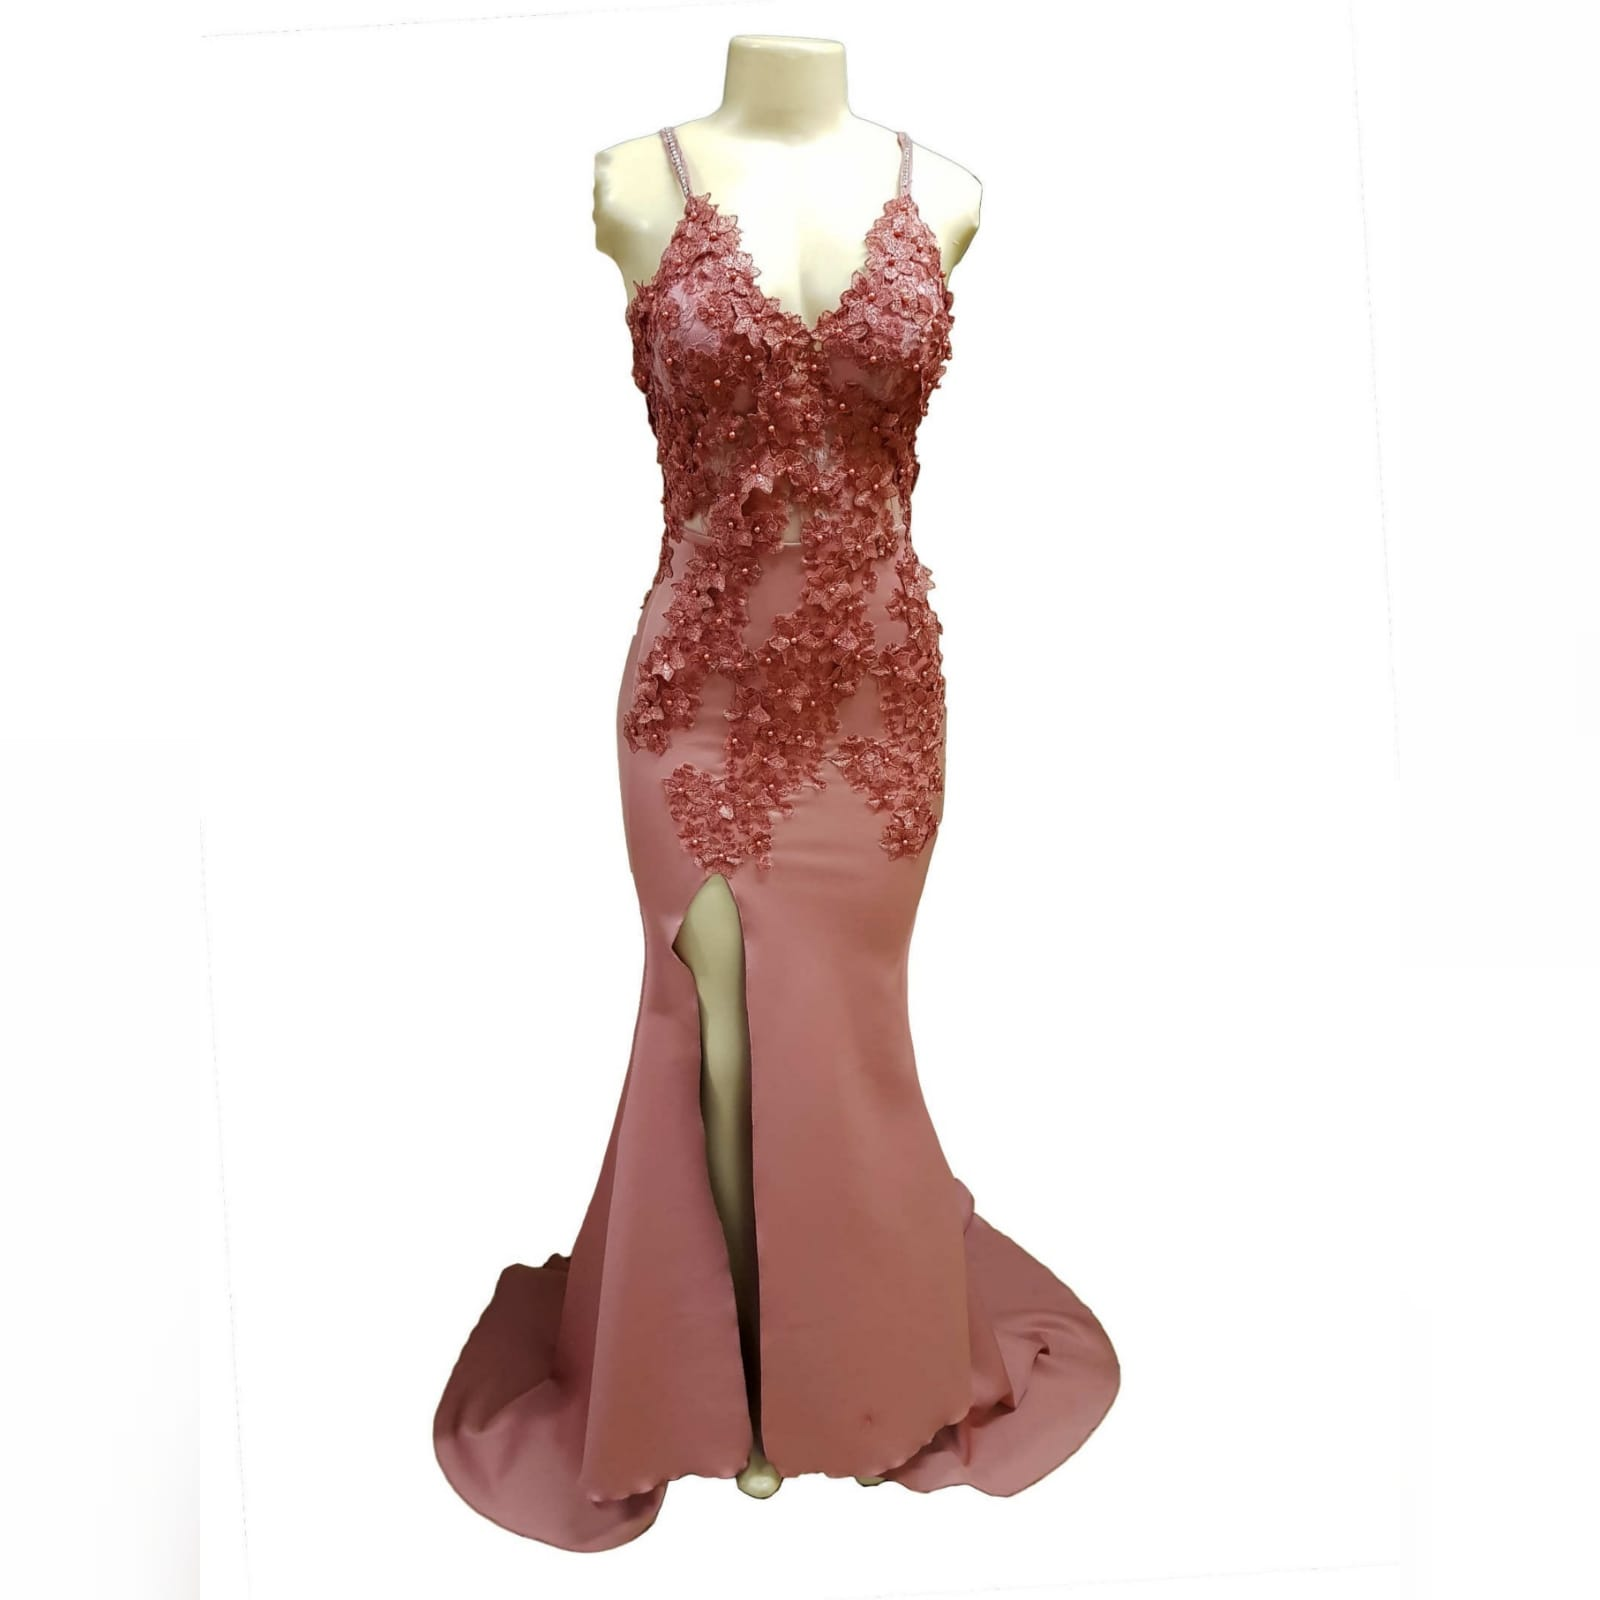 Pink elegant prom dress 4 choose a pink elegant prom dress for your special event. A colour that inspires kindness, sensitivity and warmth. This colour on this 3d shine lace long sexy dress creates a feel good mood, and that all will be amazing for your special night.